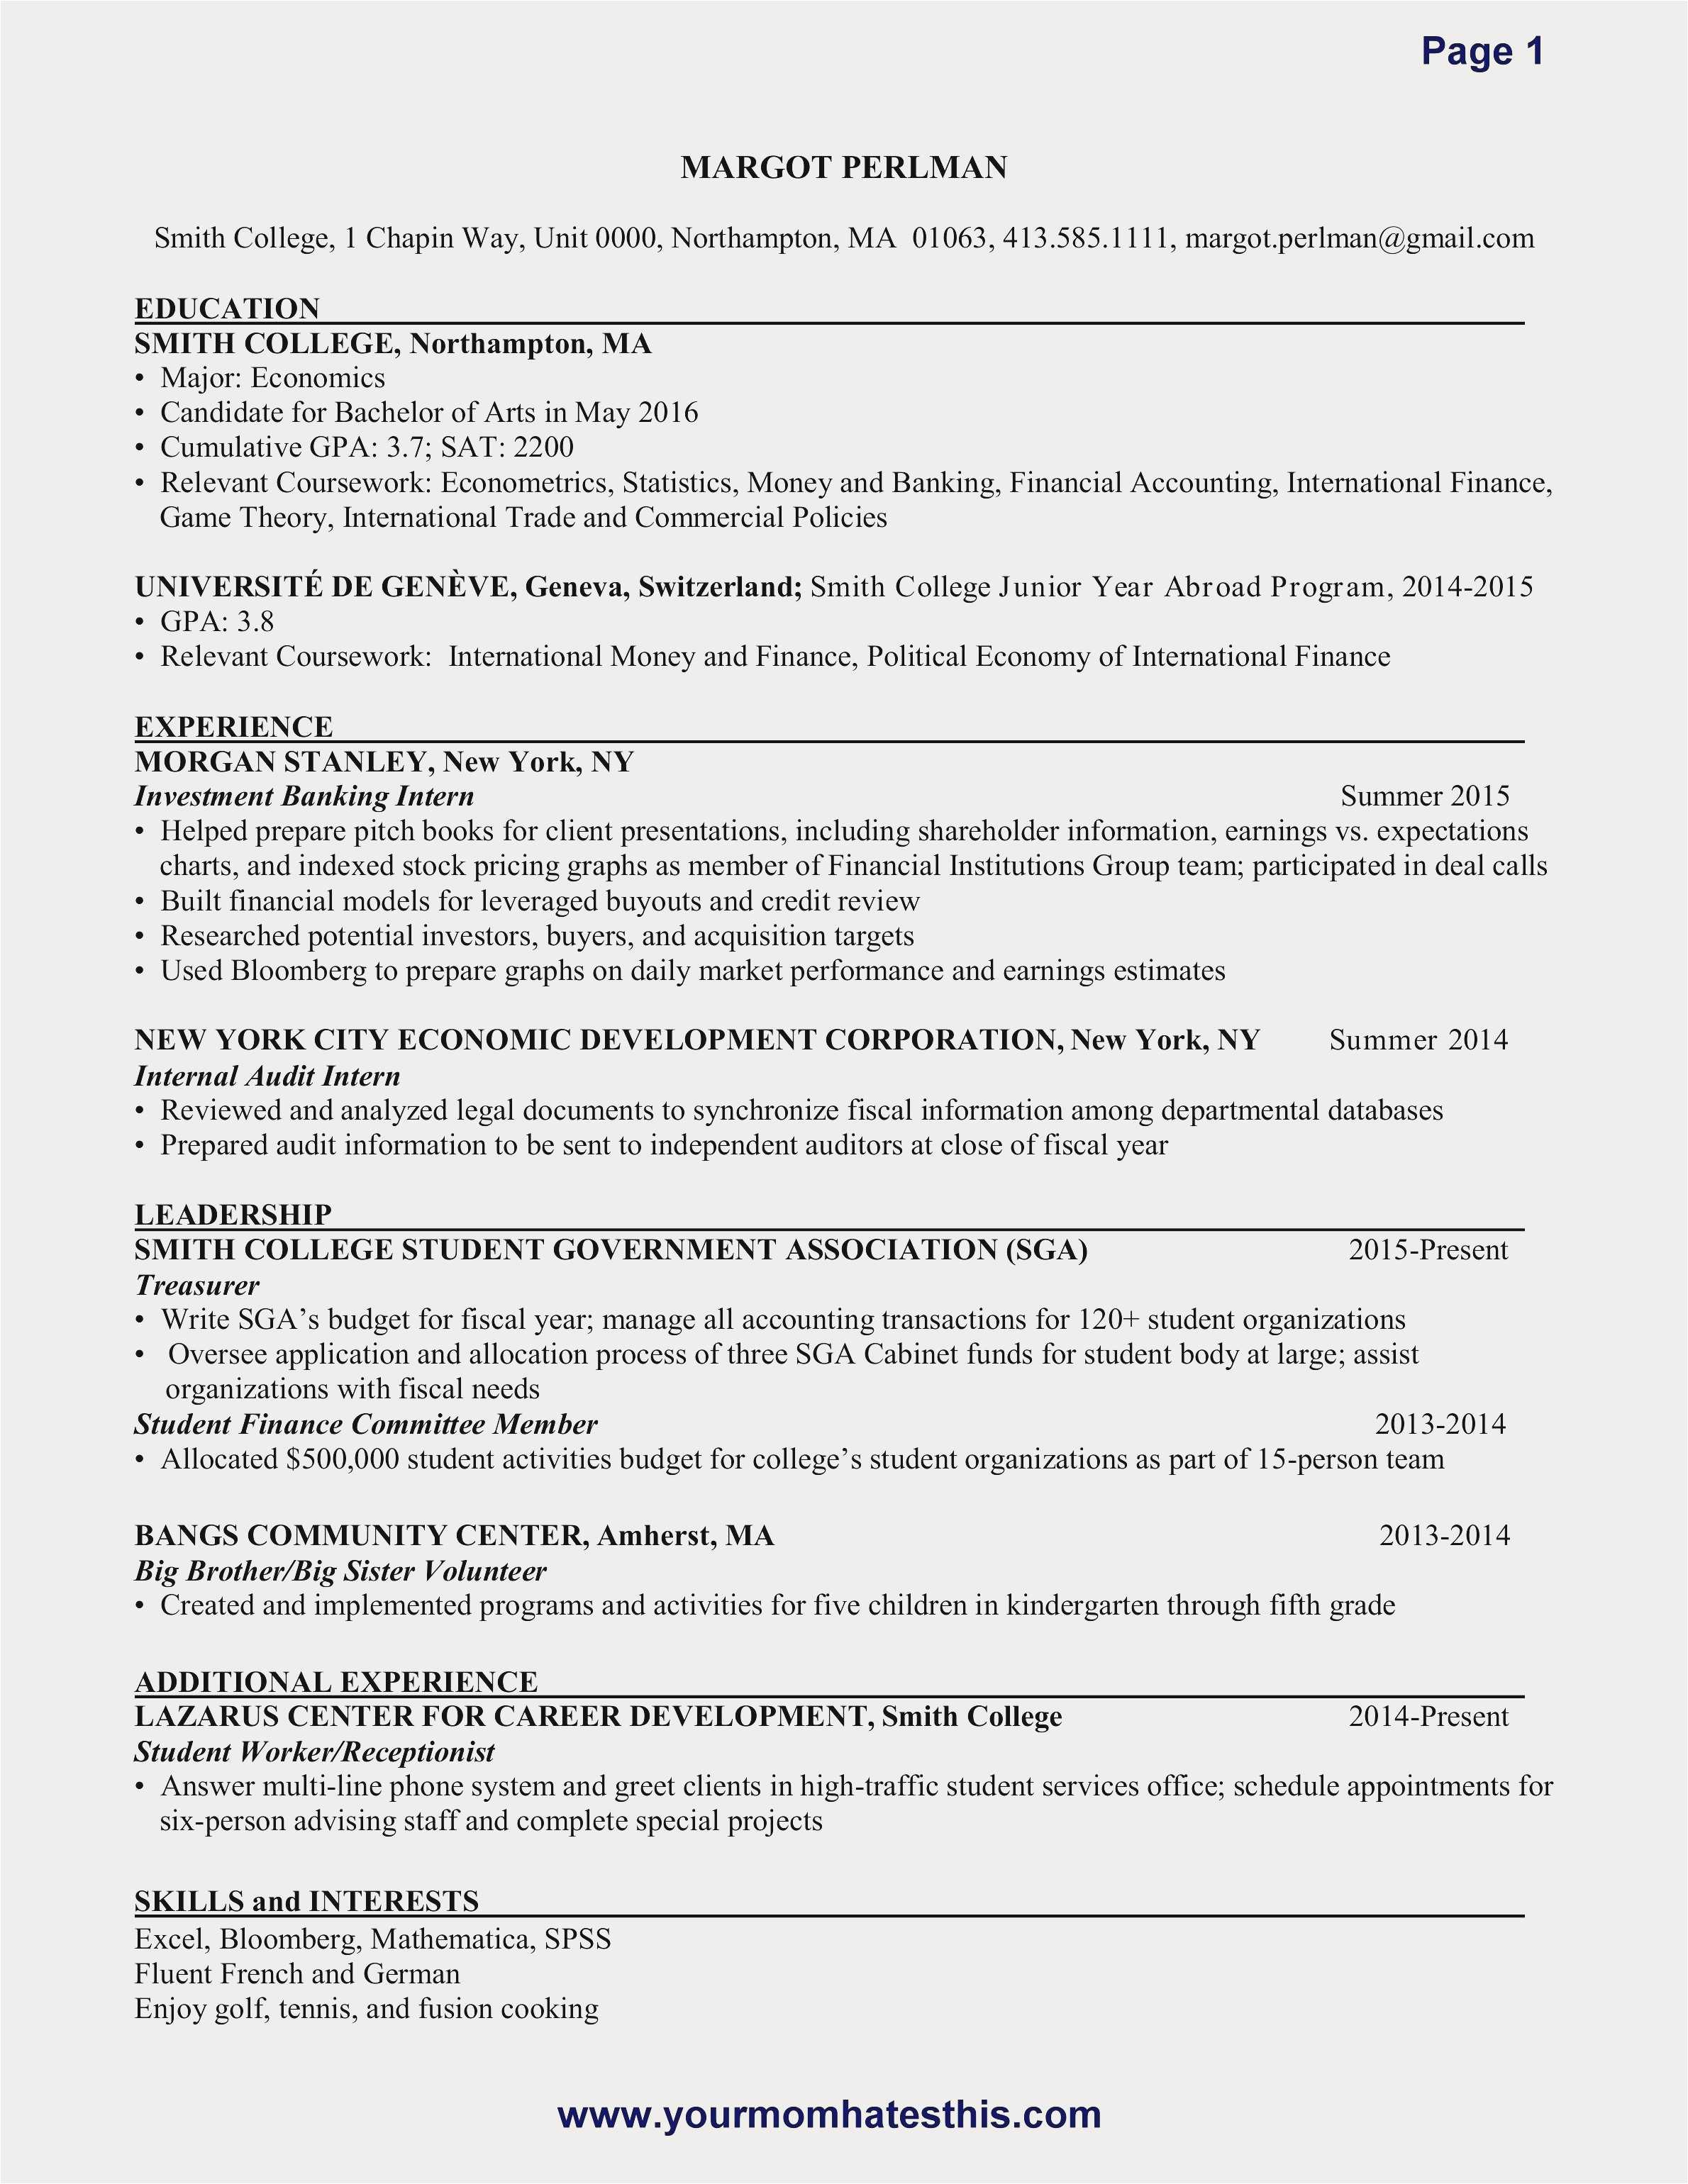 Resume How Many Pages - How to Put to Her A Resume format Best Fresh Entry Level Resume